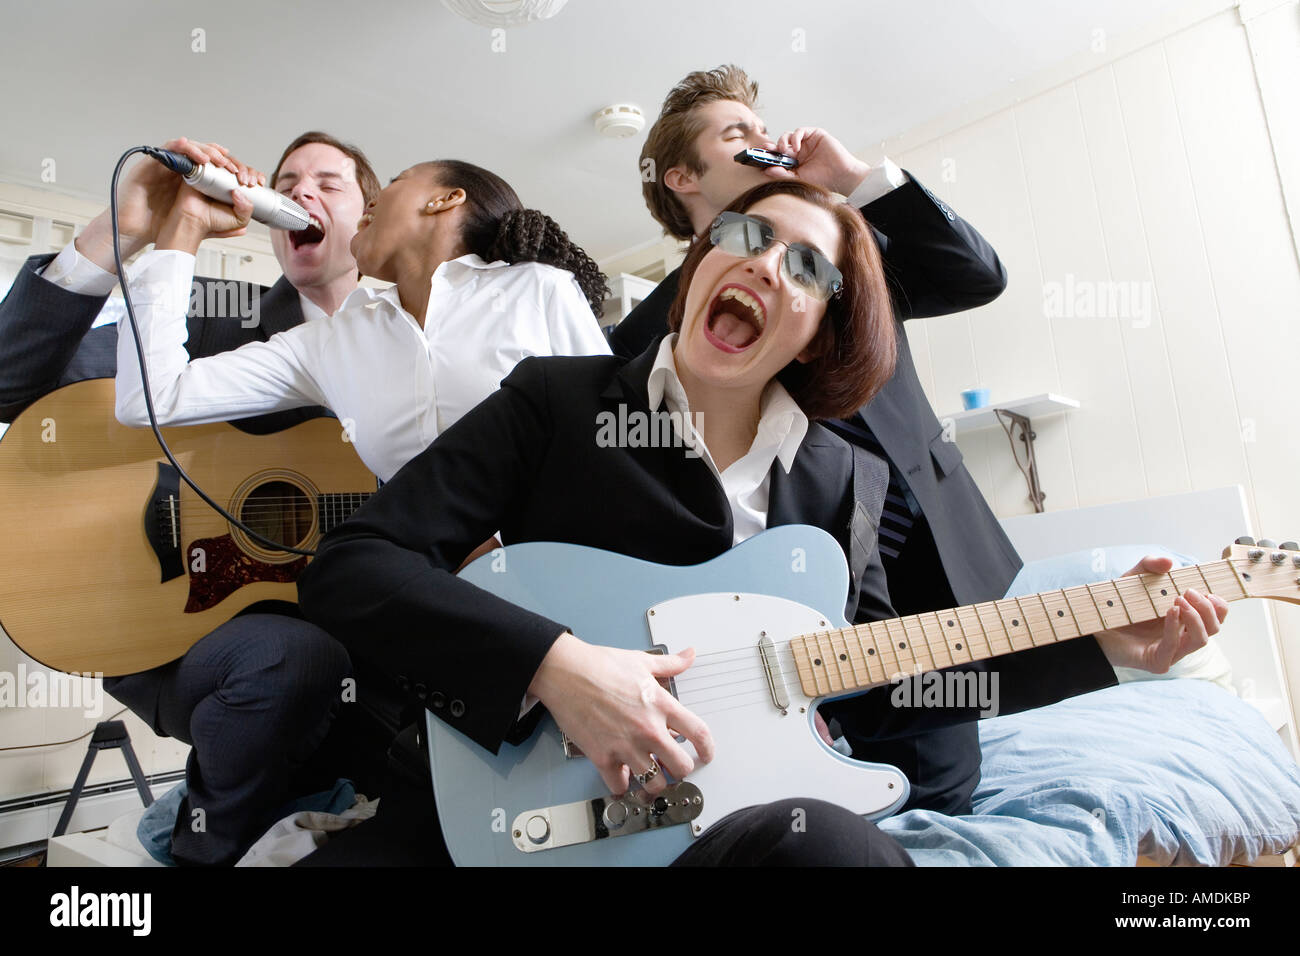 View Of People Playing Music Stock Photo 15231801 Alamy